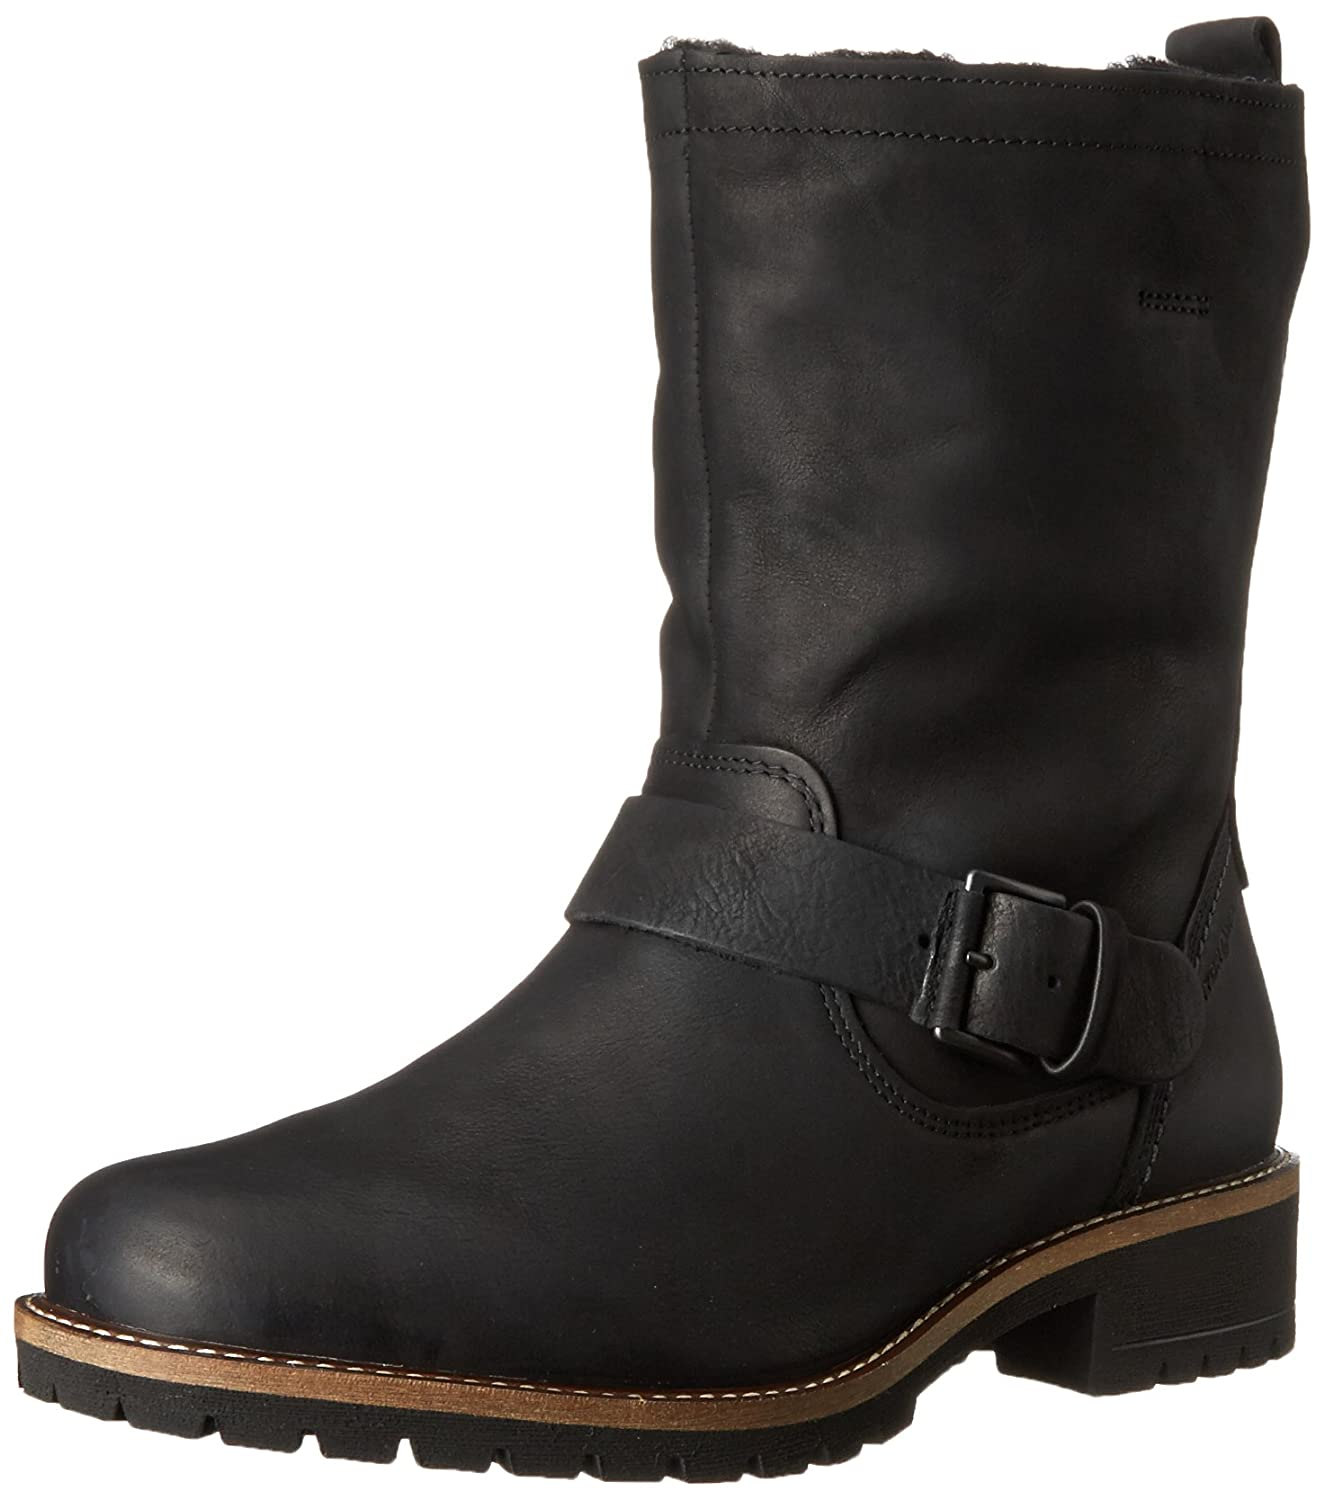 Black Ecco Footwear Womens Elaine Buckle Boot